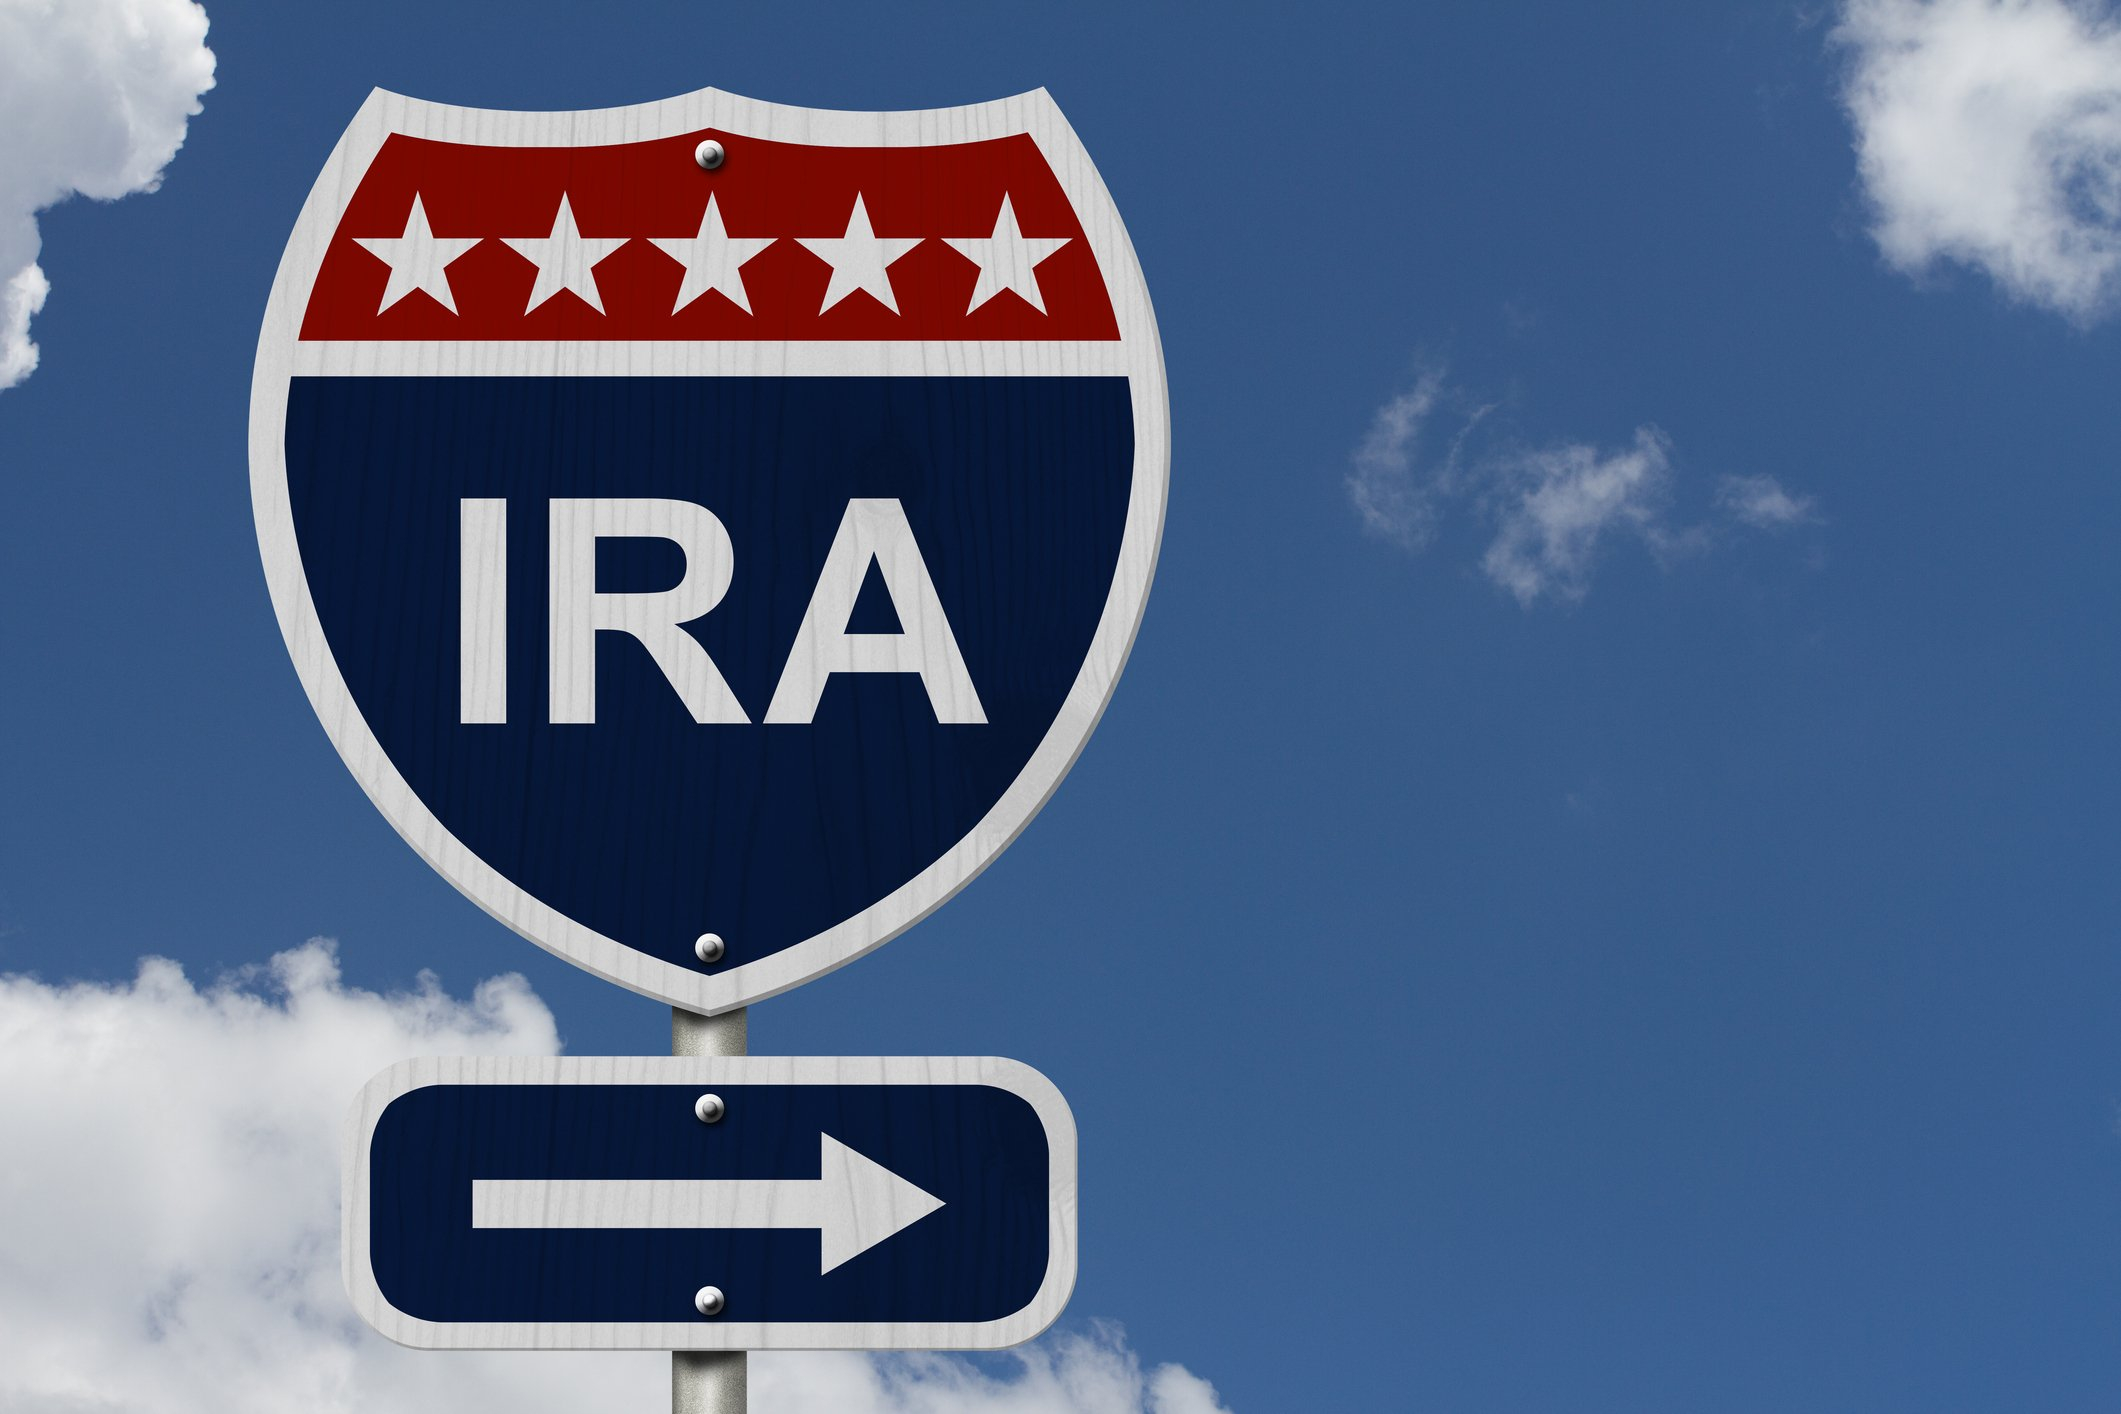 2018 Ira Rmd Table How Much Do I Have To Withdraw From My Pertaining To Ira Required Minimum Distribution Worksheet